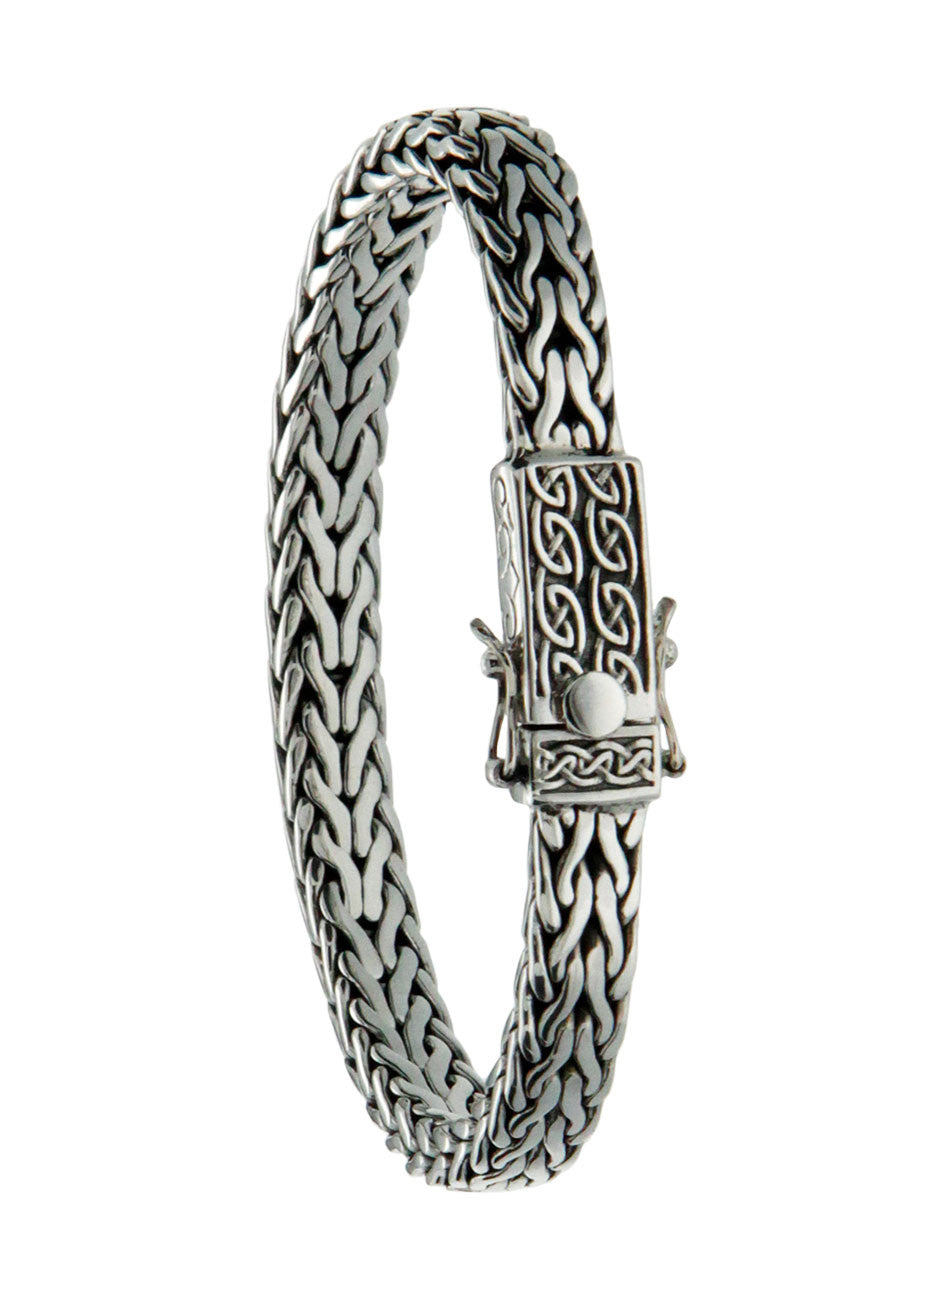 Dragon Weave Bracelet - Celtic Square